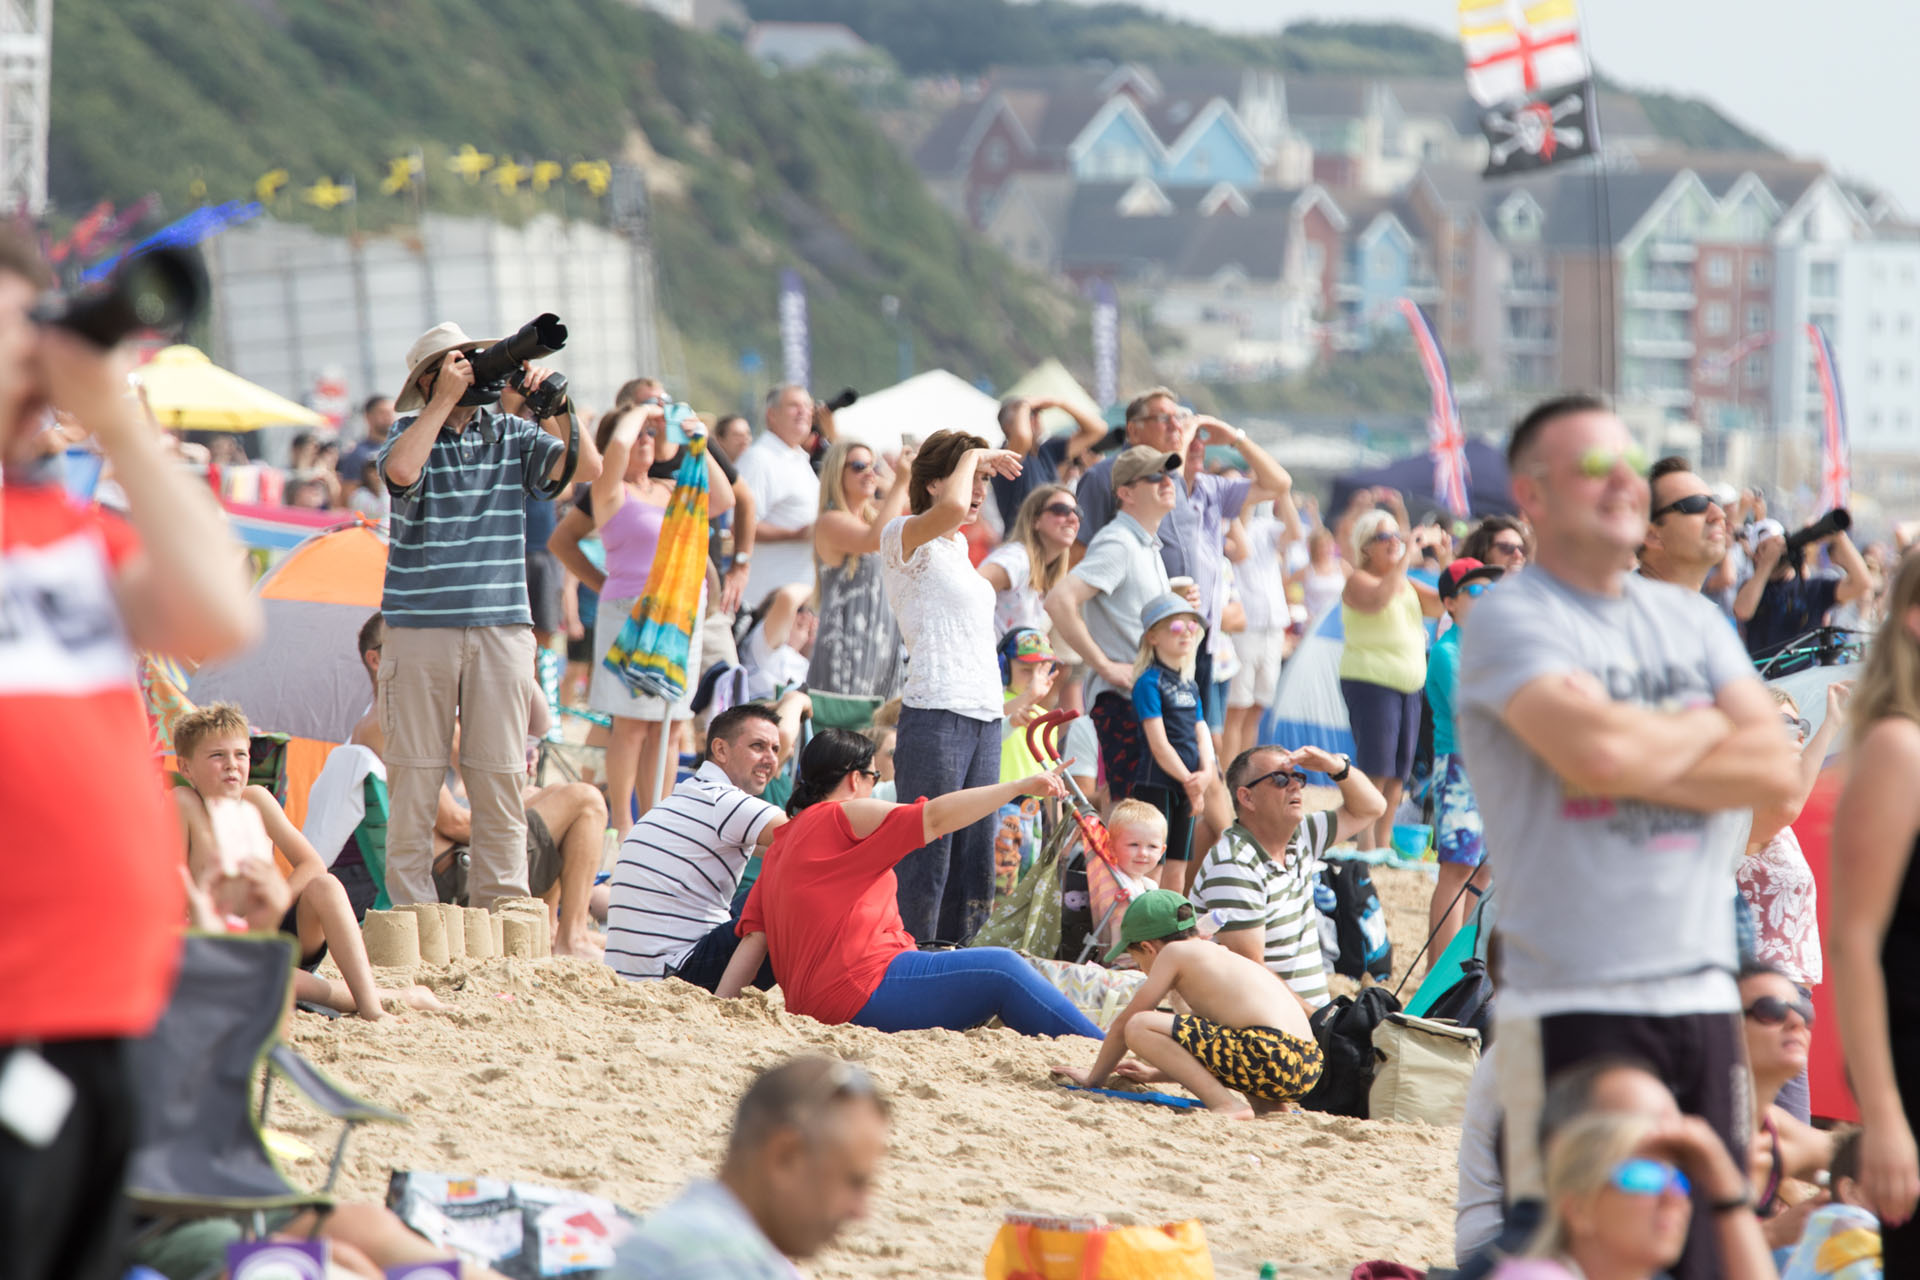 Festival goers watching the Air Show in full swing